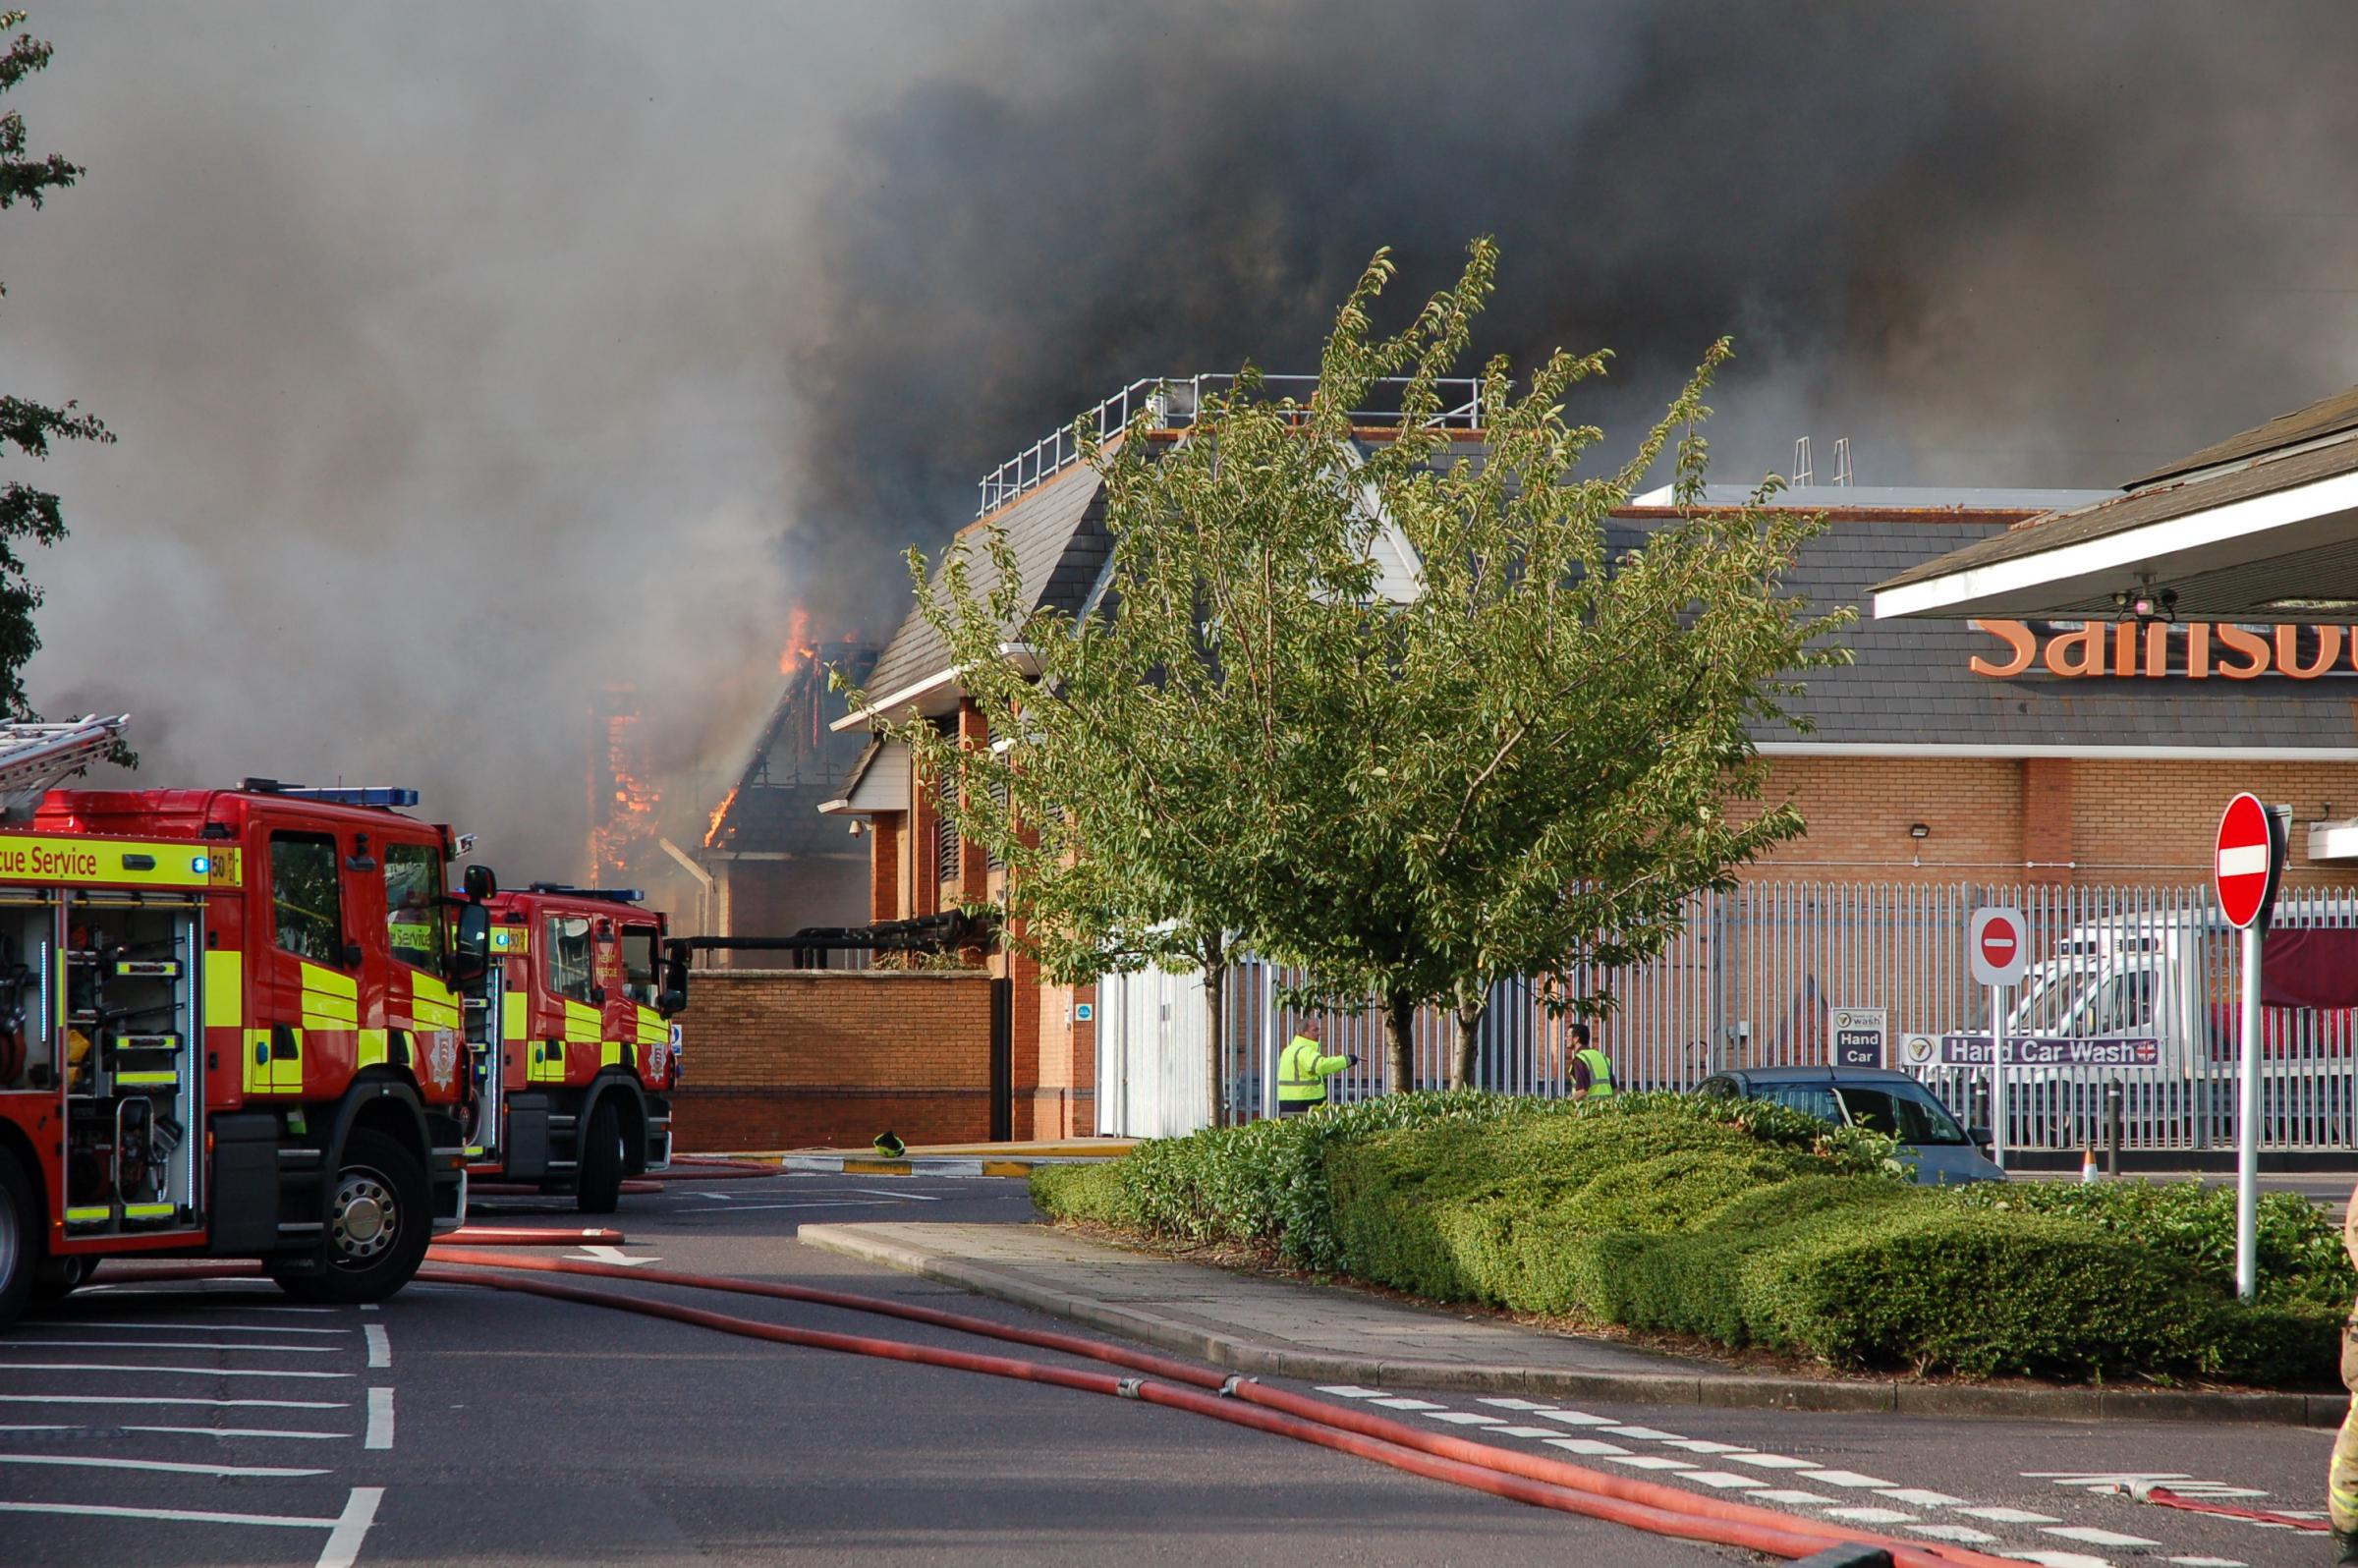 200 new homes and a doctors surgery were planned for site where building burnt down